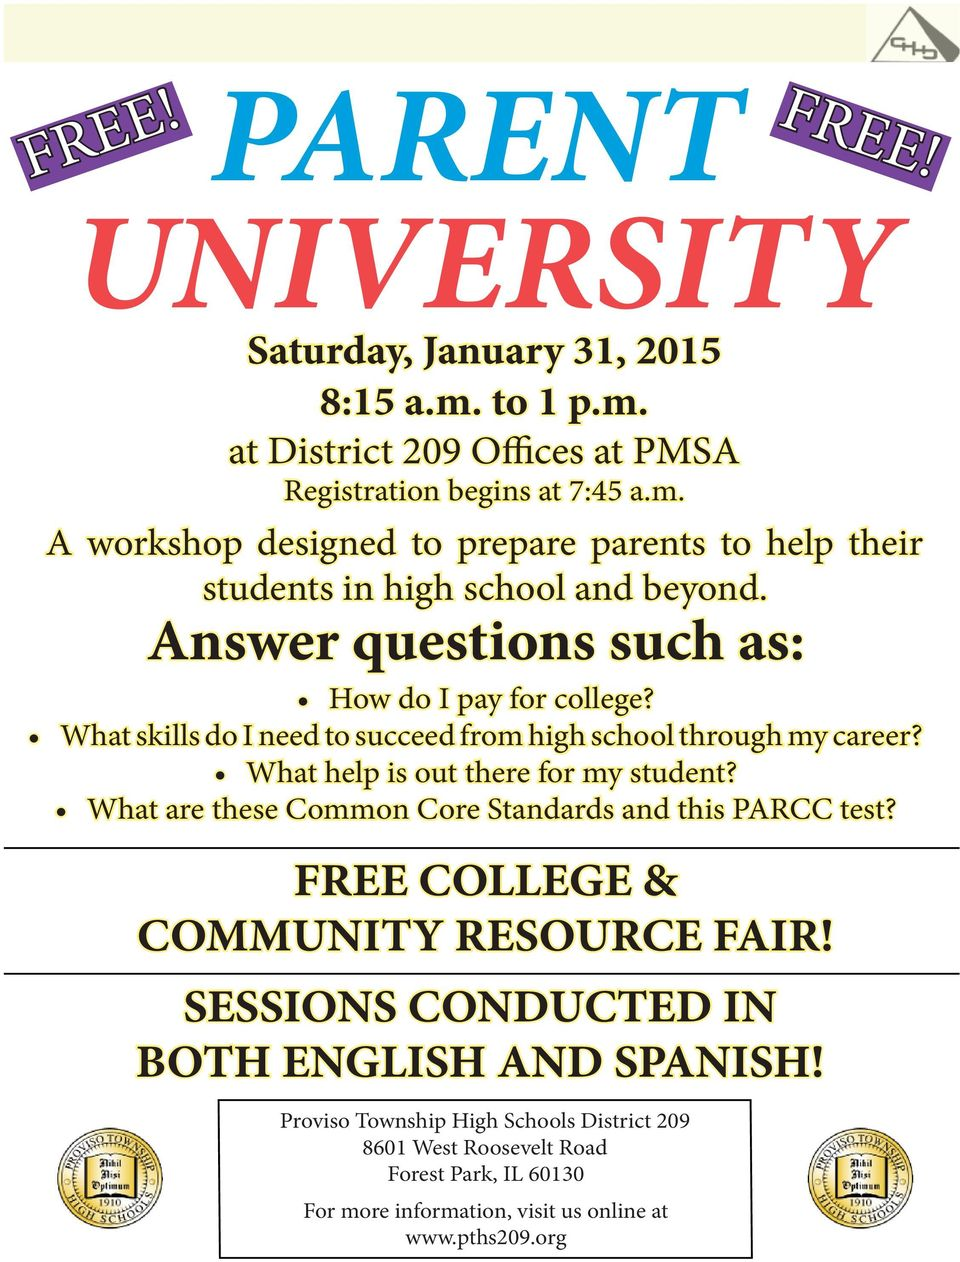 What are these Common Core Standards and this PARCC test? FREE COLLEGE & COMMUNITY RESOURCE FAIR! SESSIONS CONDUCTED IN BOTH ENGLISH AND SPANISH!